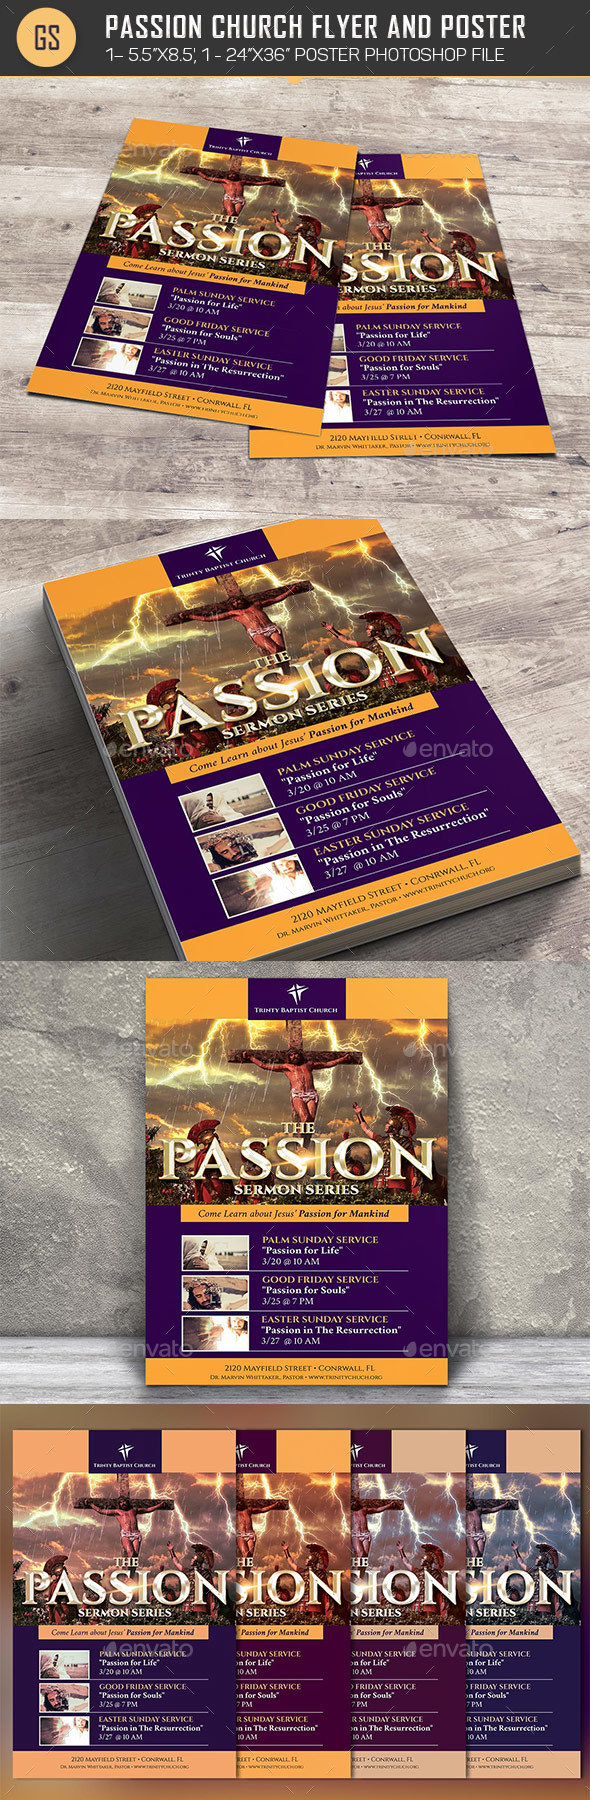 Passion Flyer Poster Template - Church Flyers